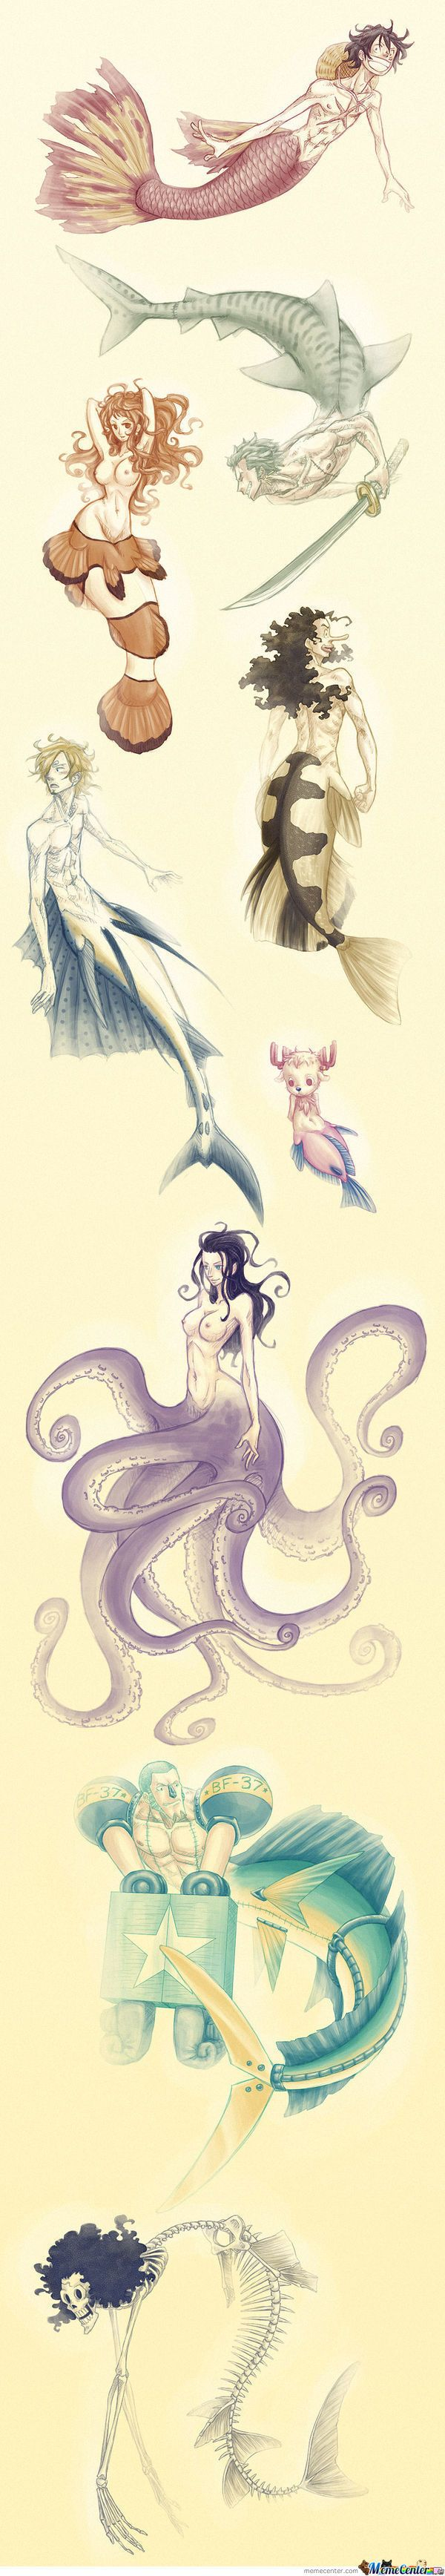 one piece mermaid